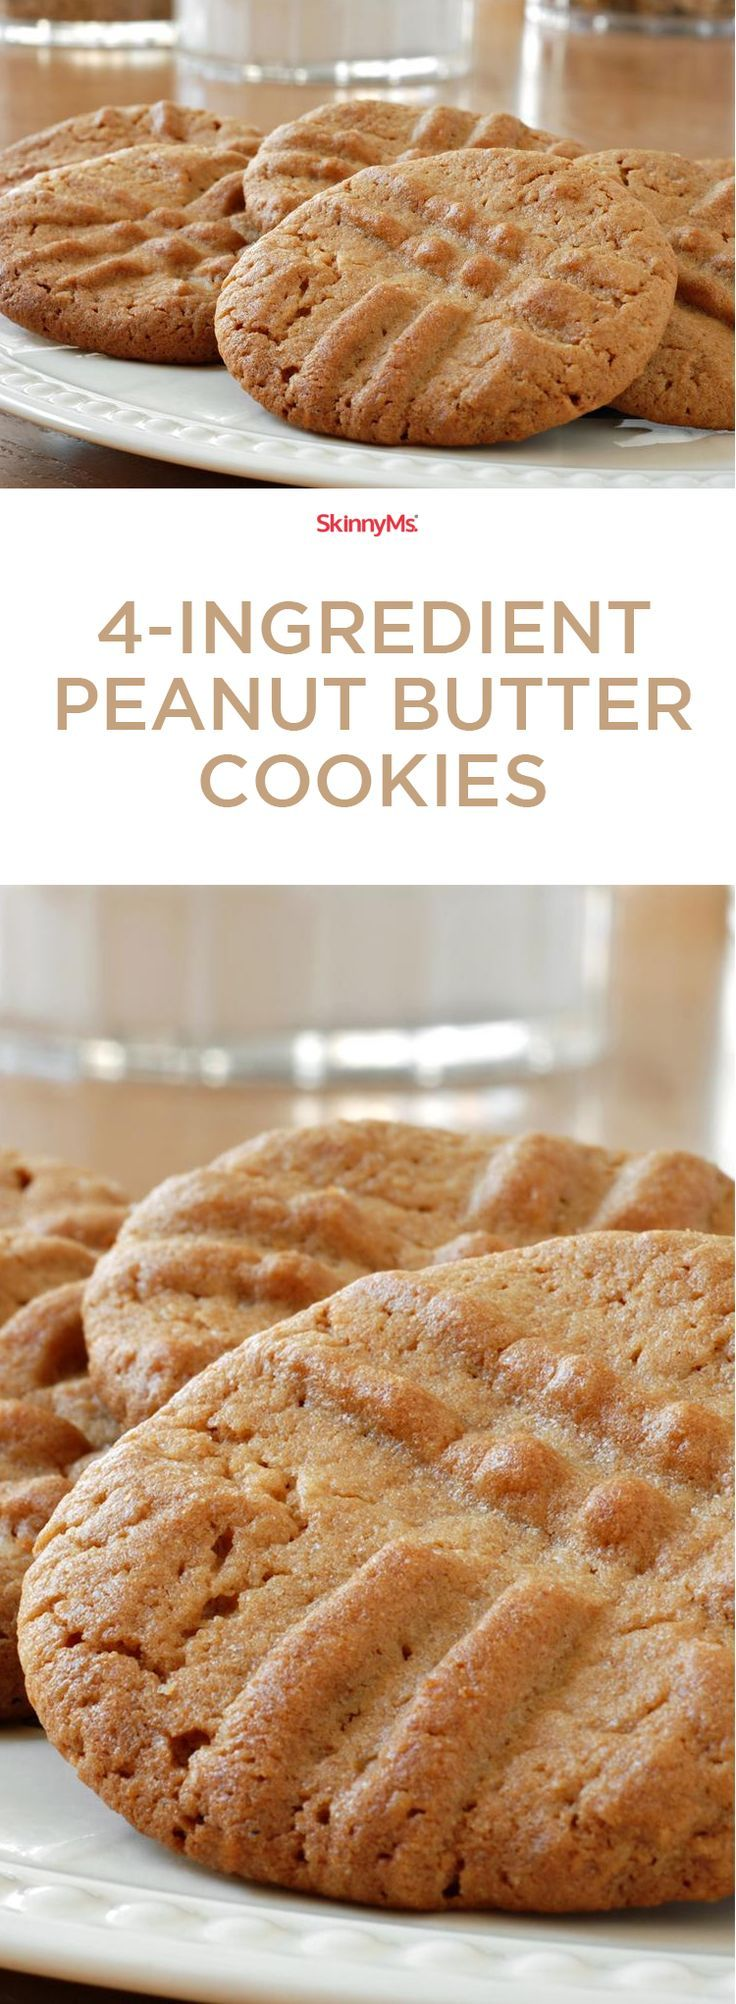 4-Ingredient Peanut Butter Cookies: For a super easy healthy, guilt-free dessert! #peanutbutter #cookies